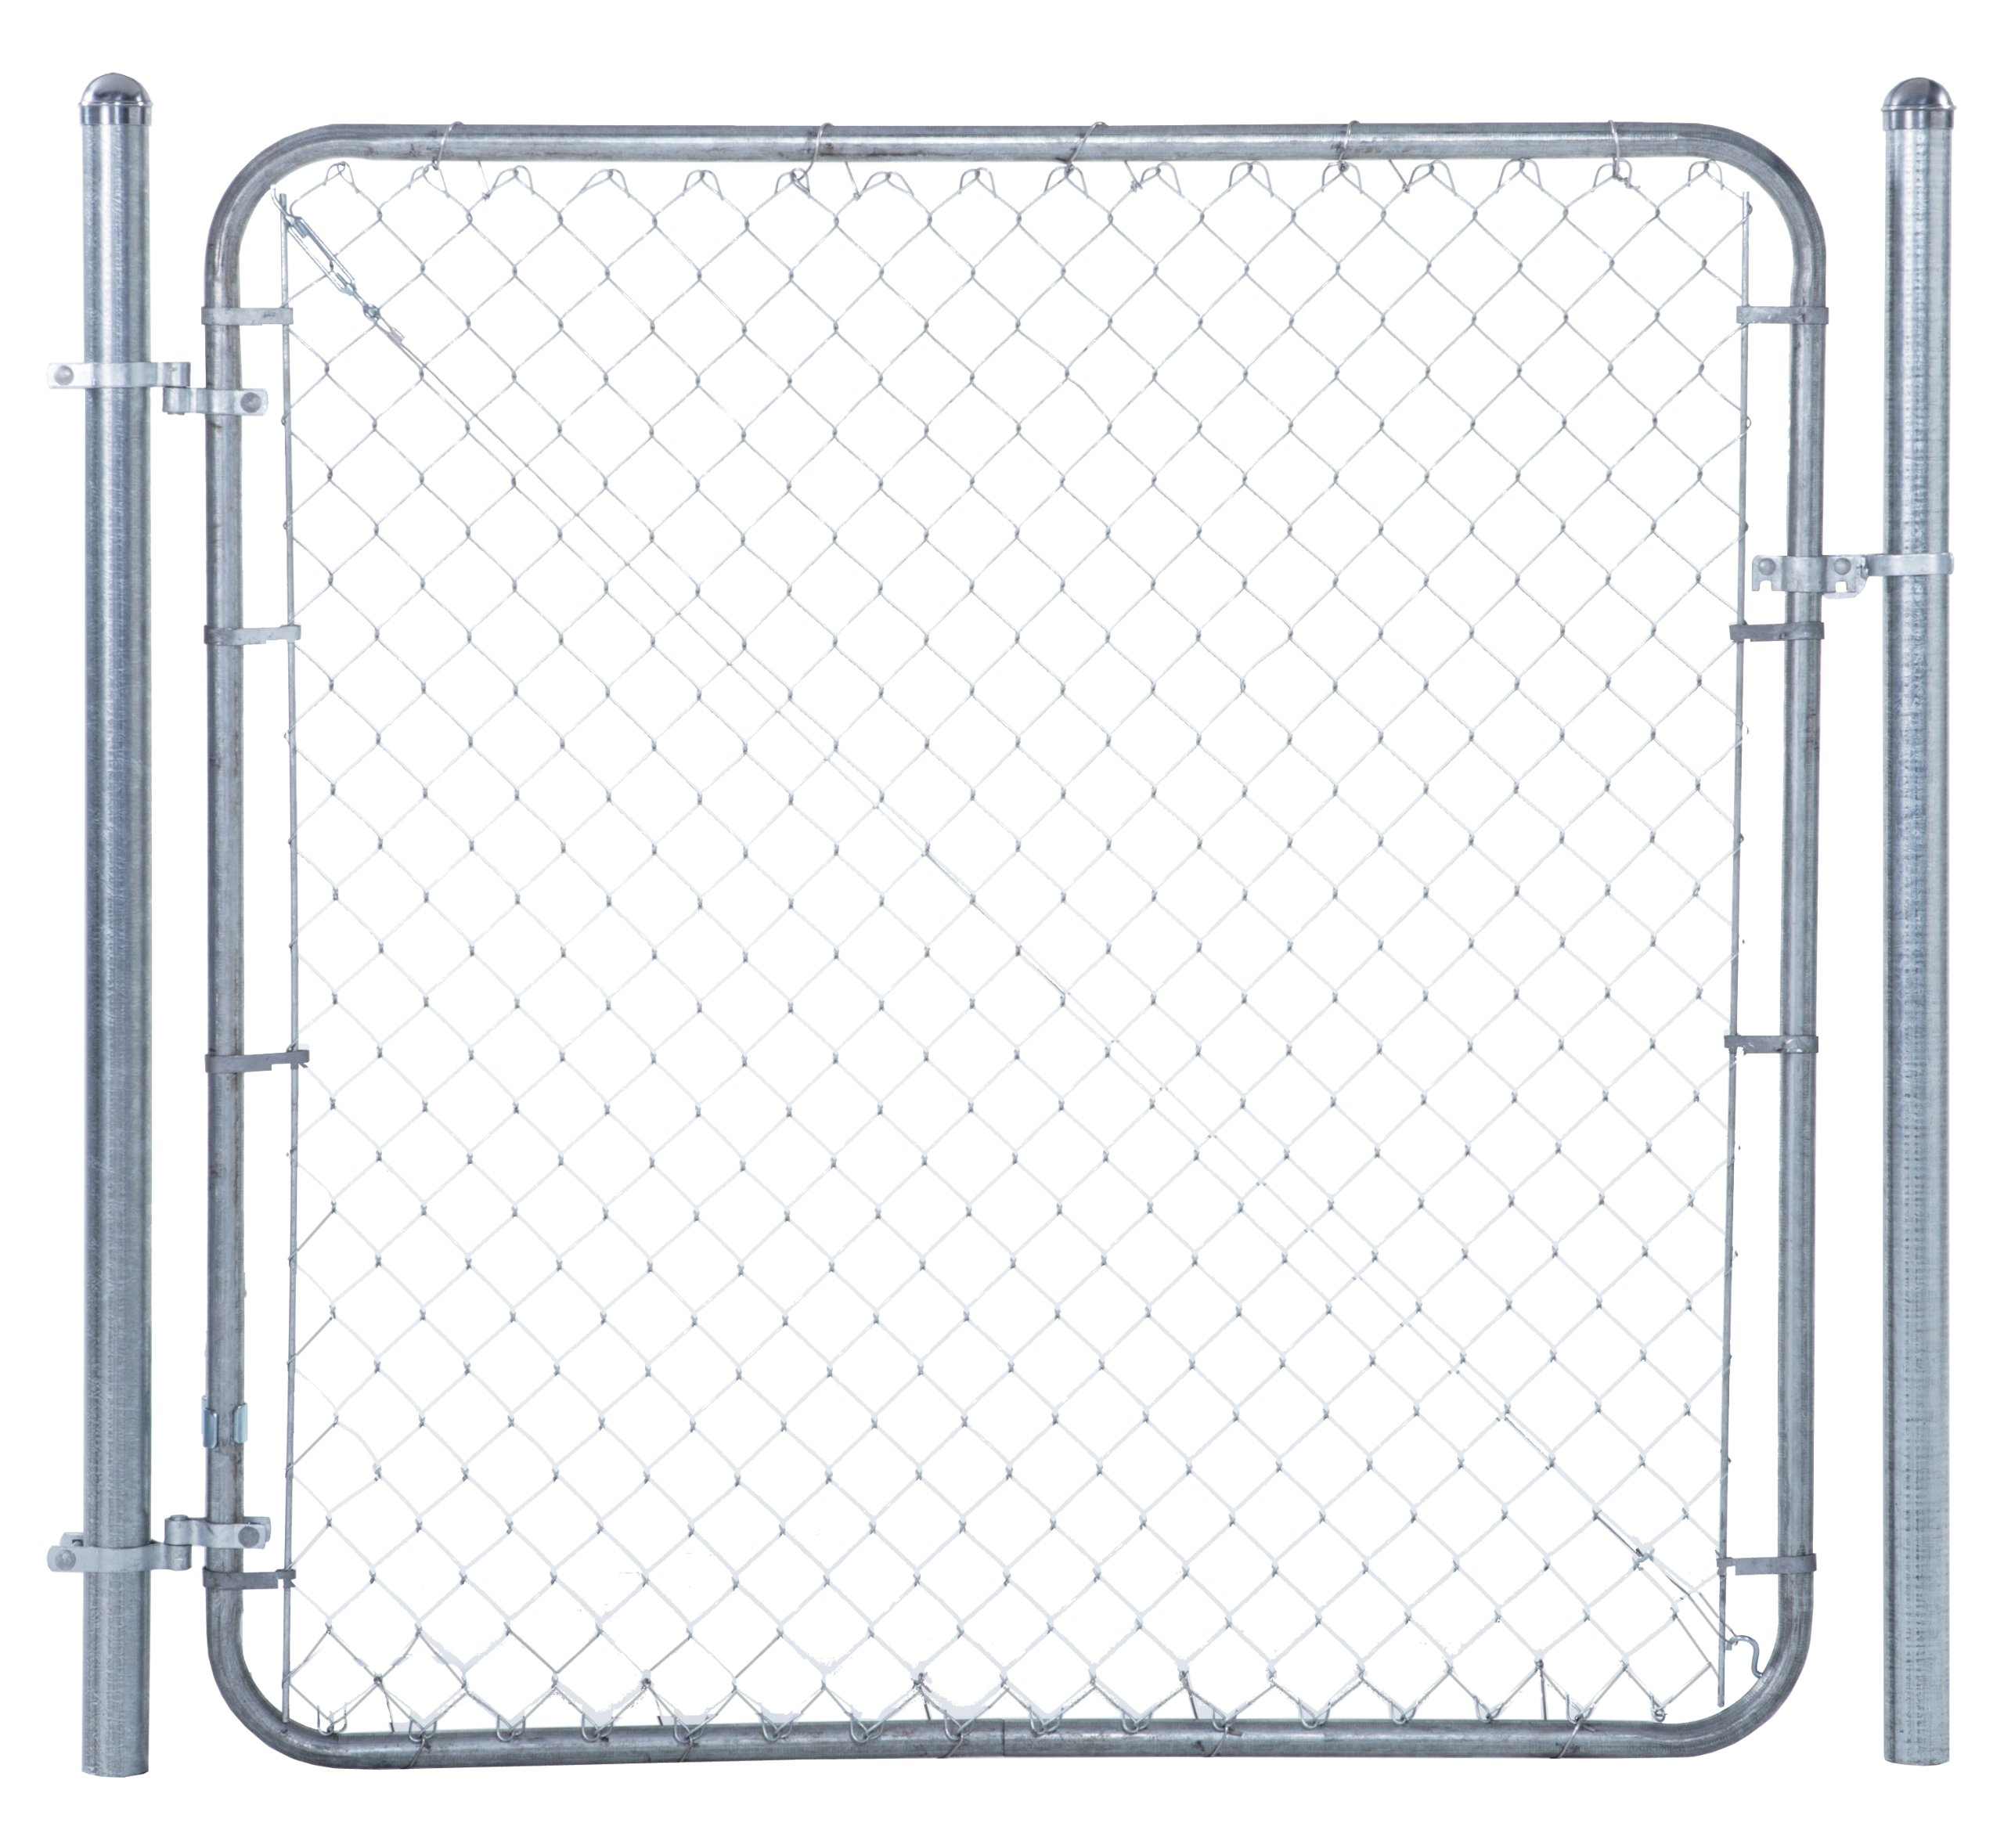 Fit-Right Chain Link Fence Walk-through Gate Kit (24''-72'' wide x 4' high) by Adjust-A-Gate